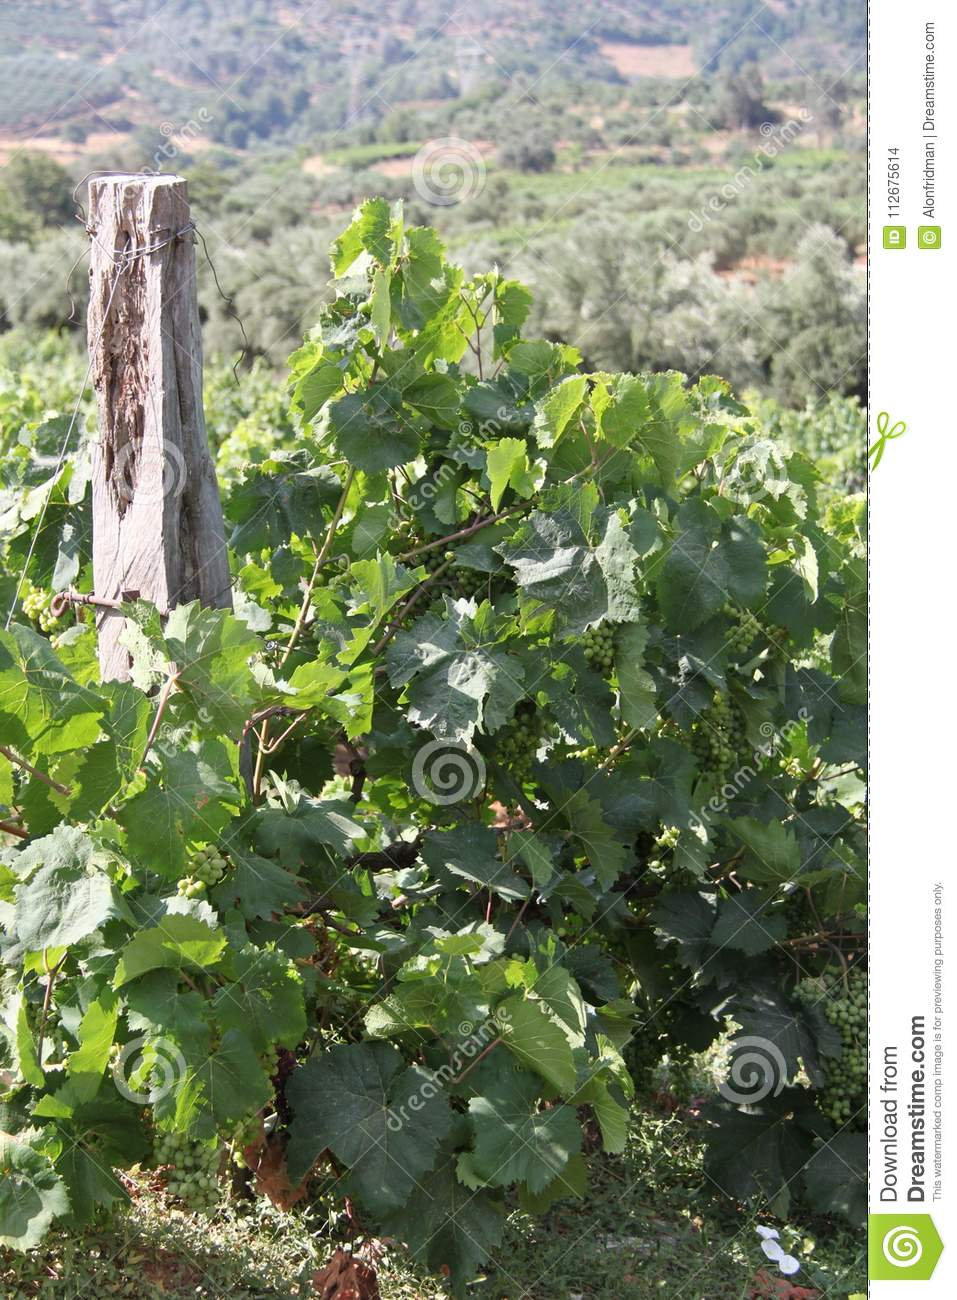 Pastoral Vine Yard Stock Photo Image Of Grape Plants 112675614